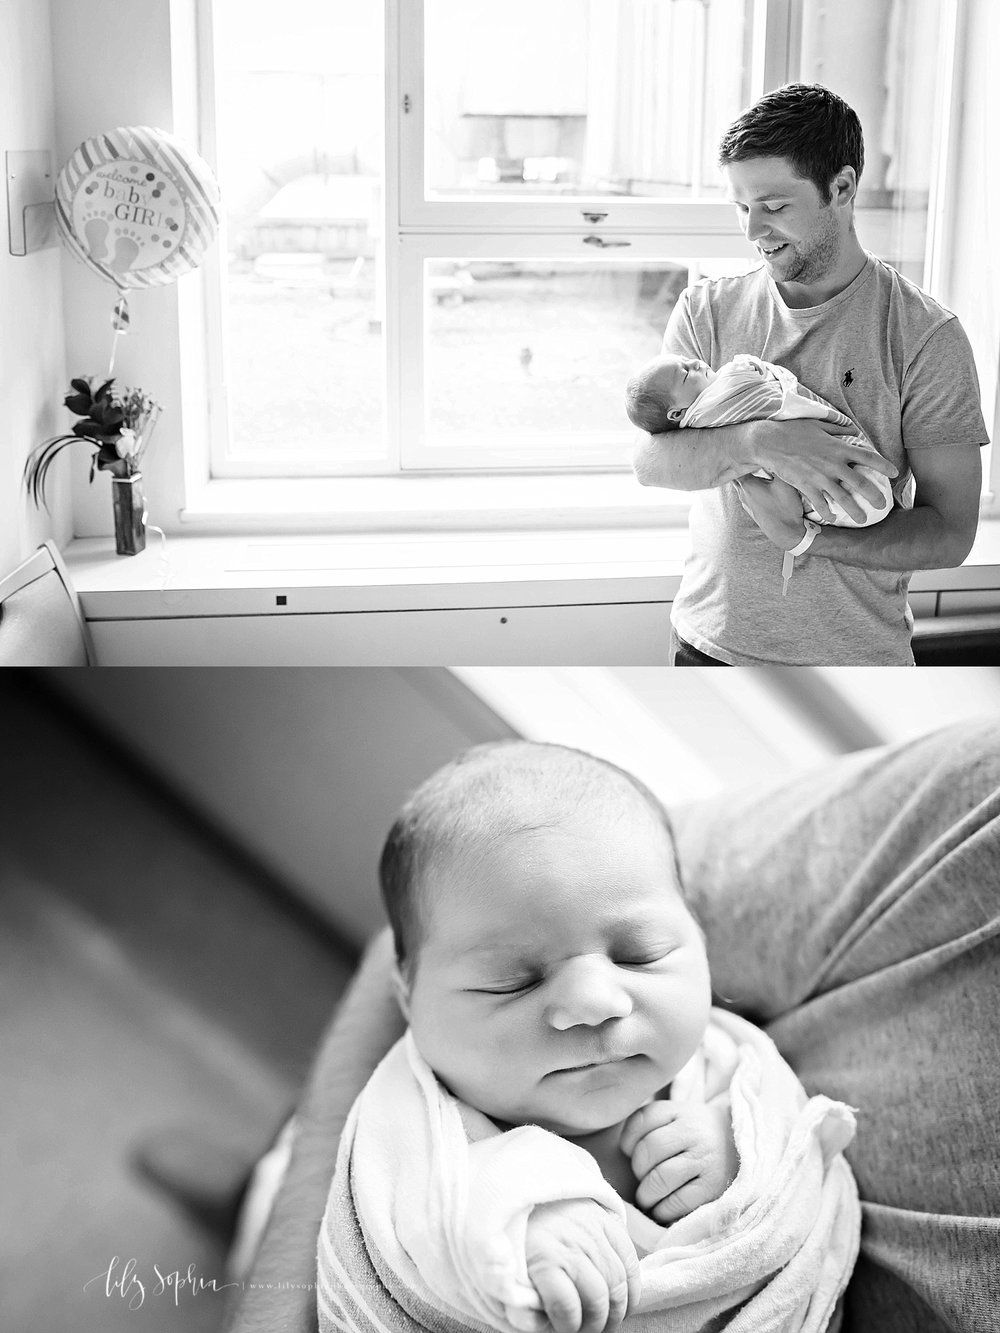 New father holding his baby girl black and white image of